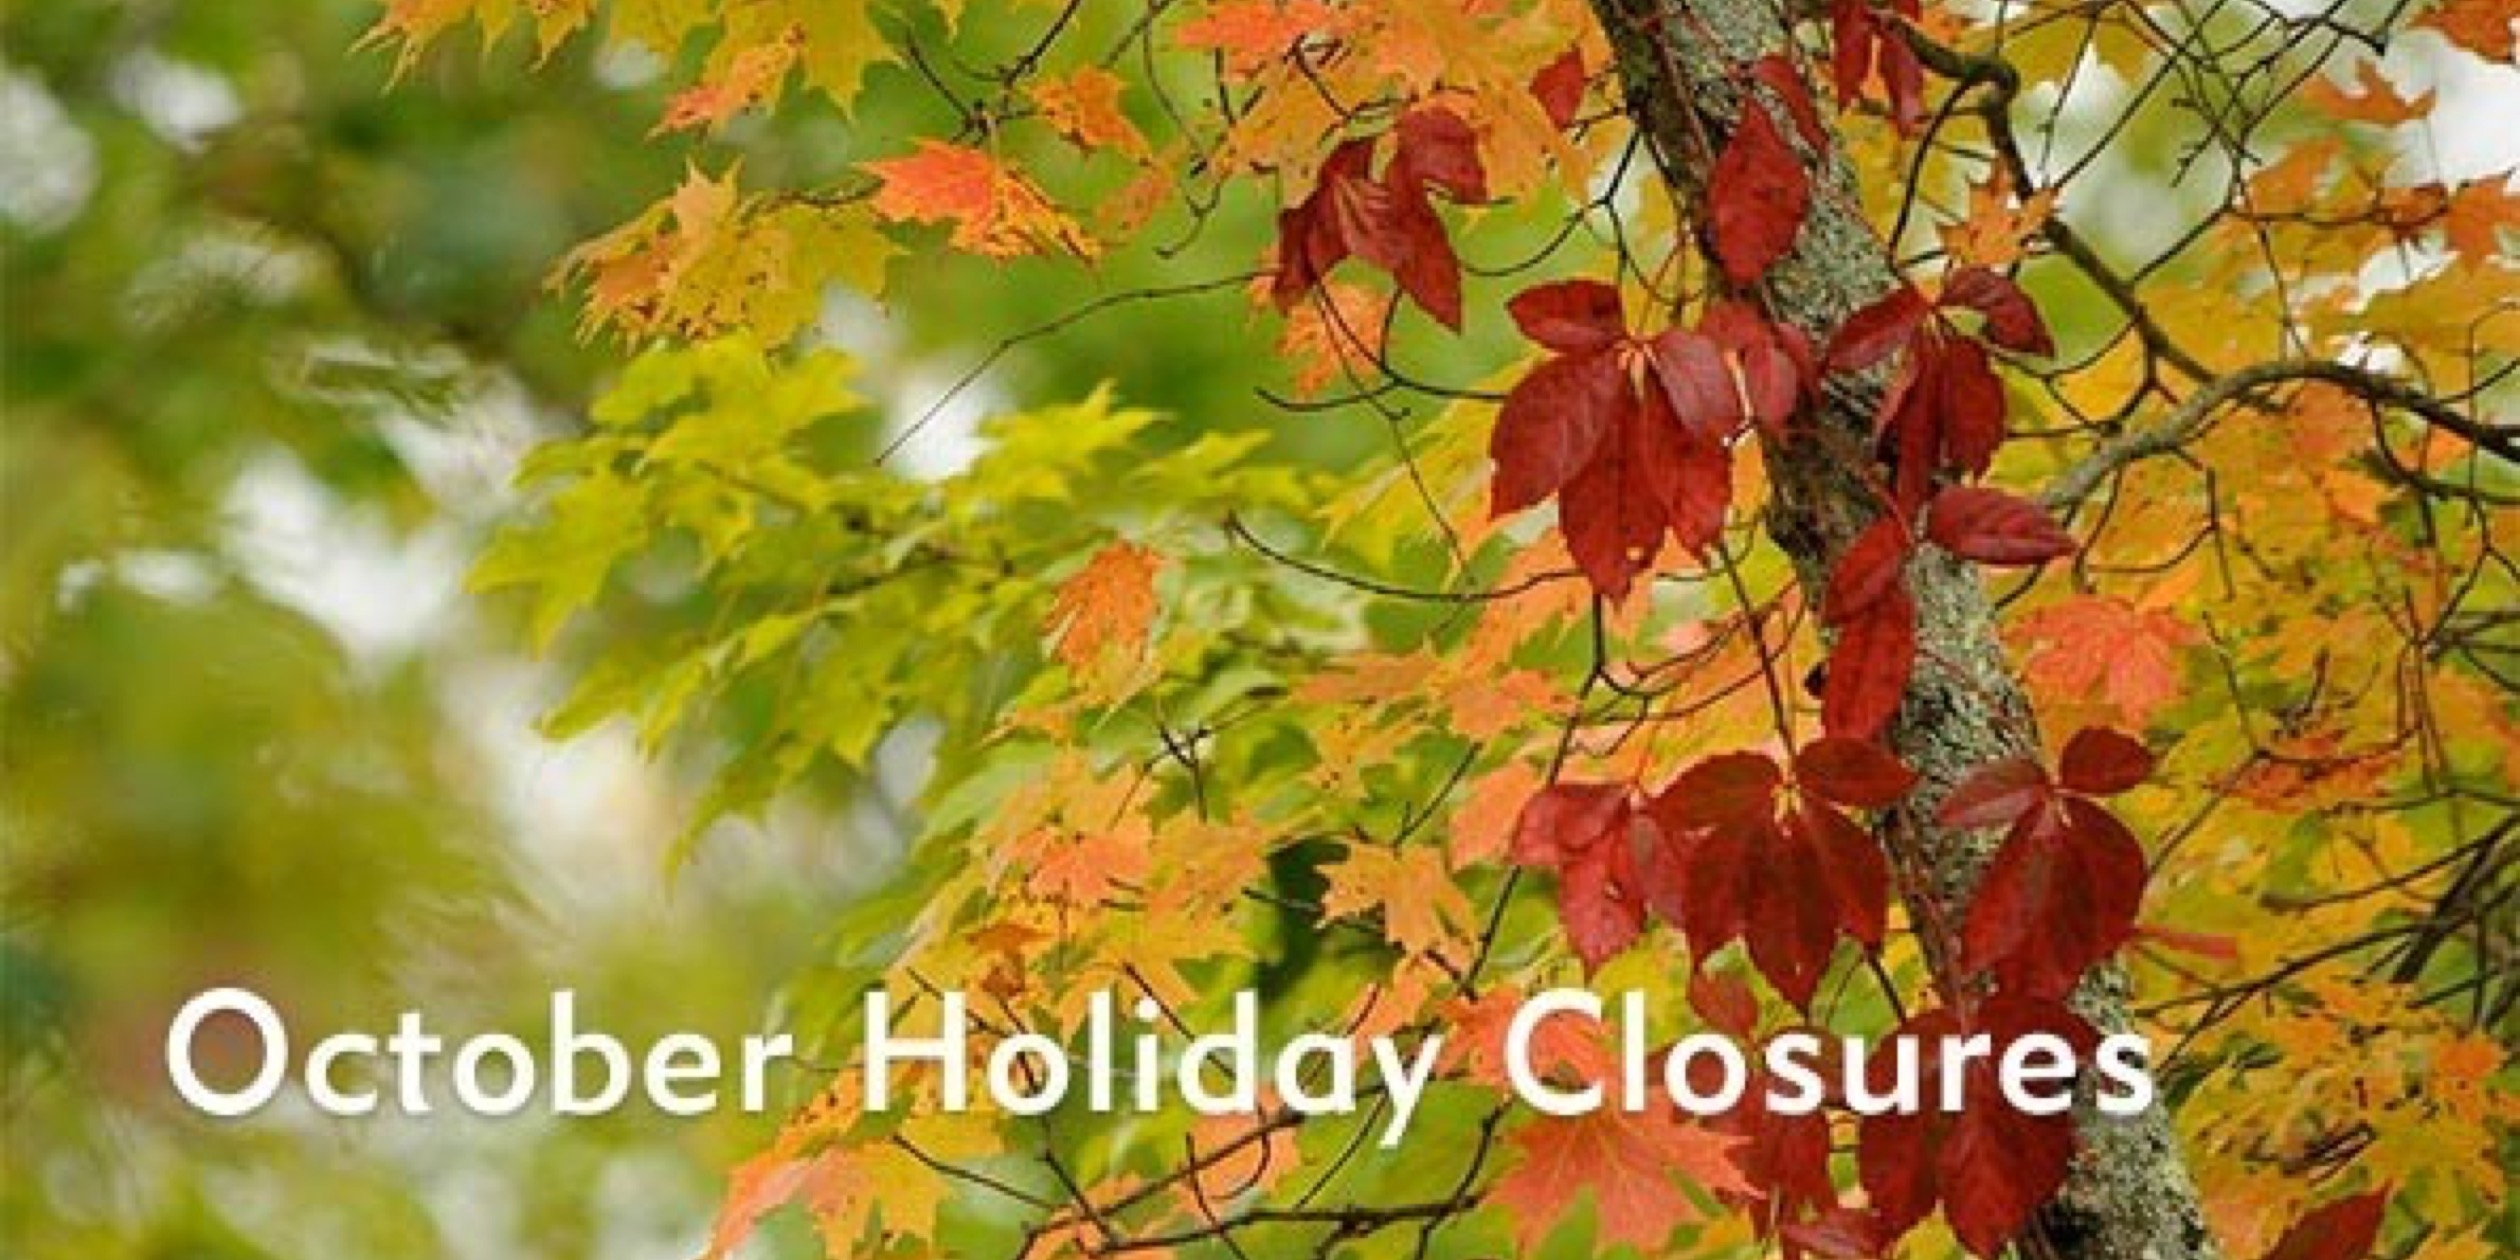 Click here for the October holiday schedule.